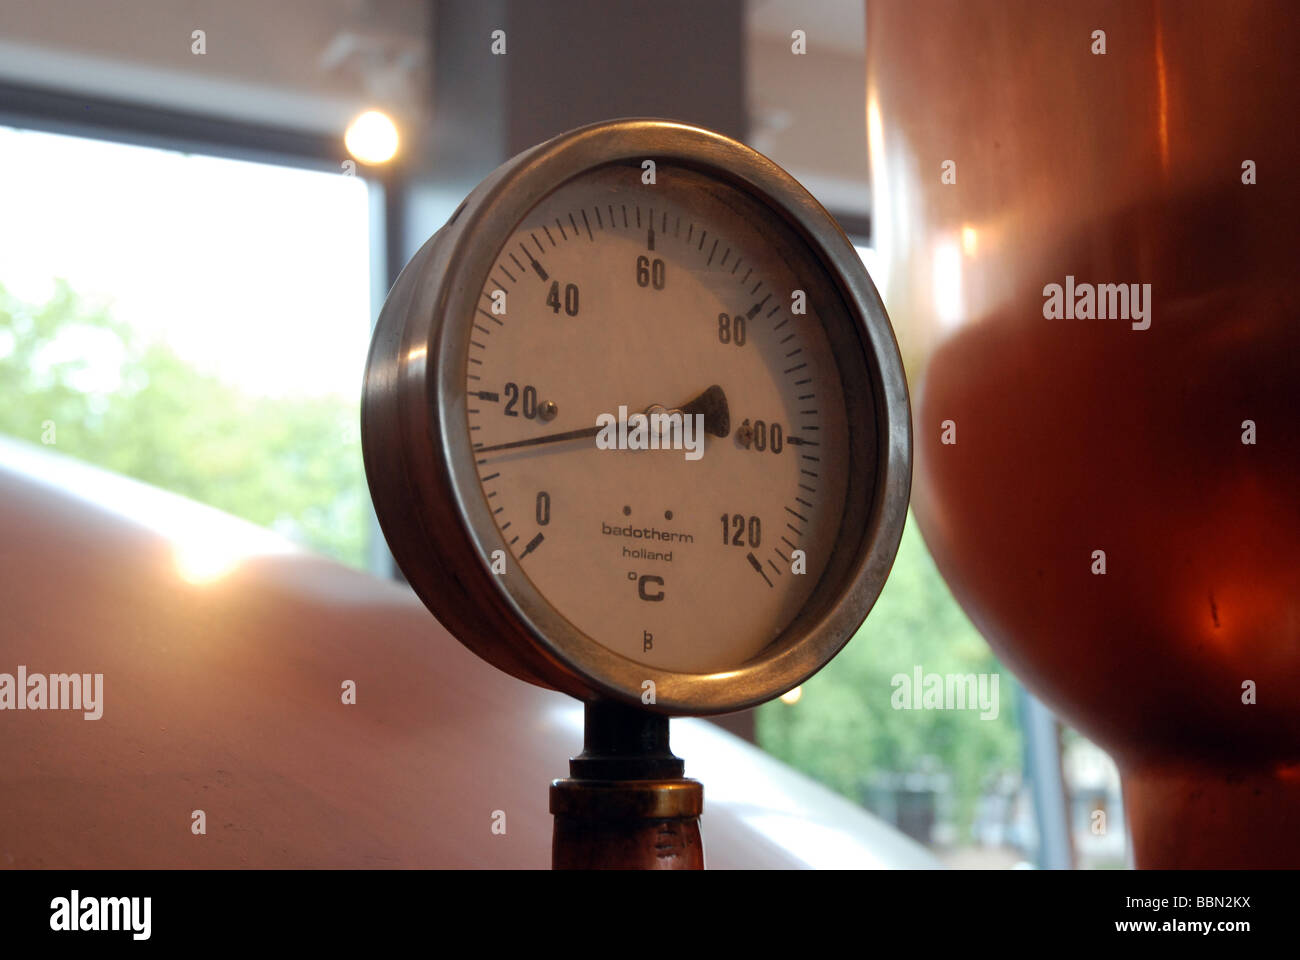 copper brass guage heineken beer amsterdam - Stock Image